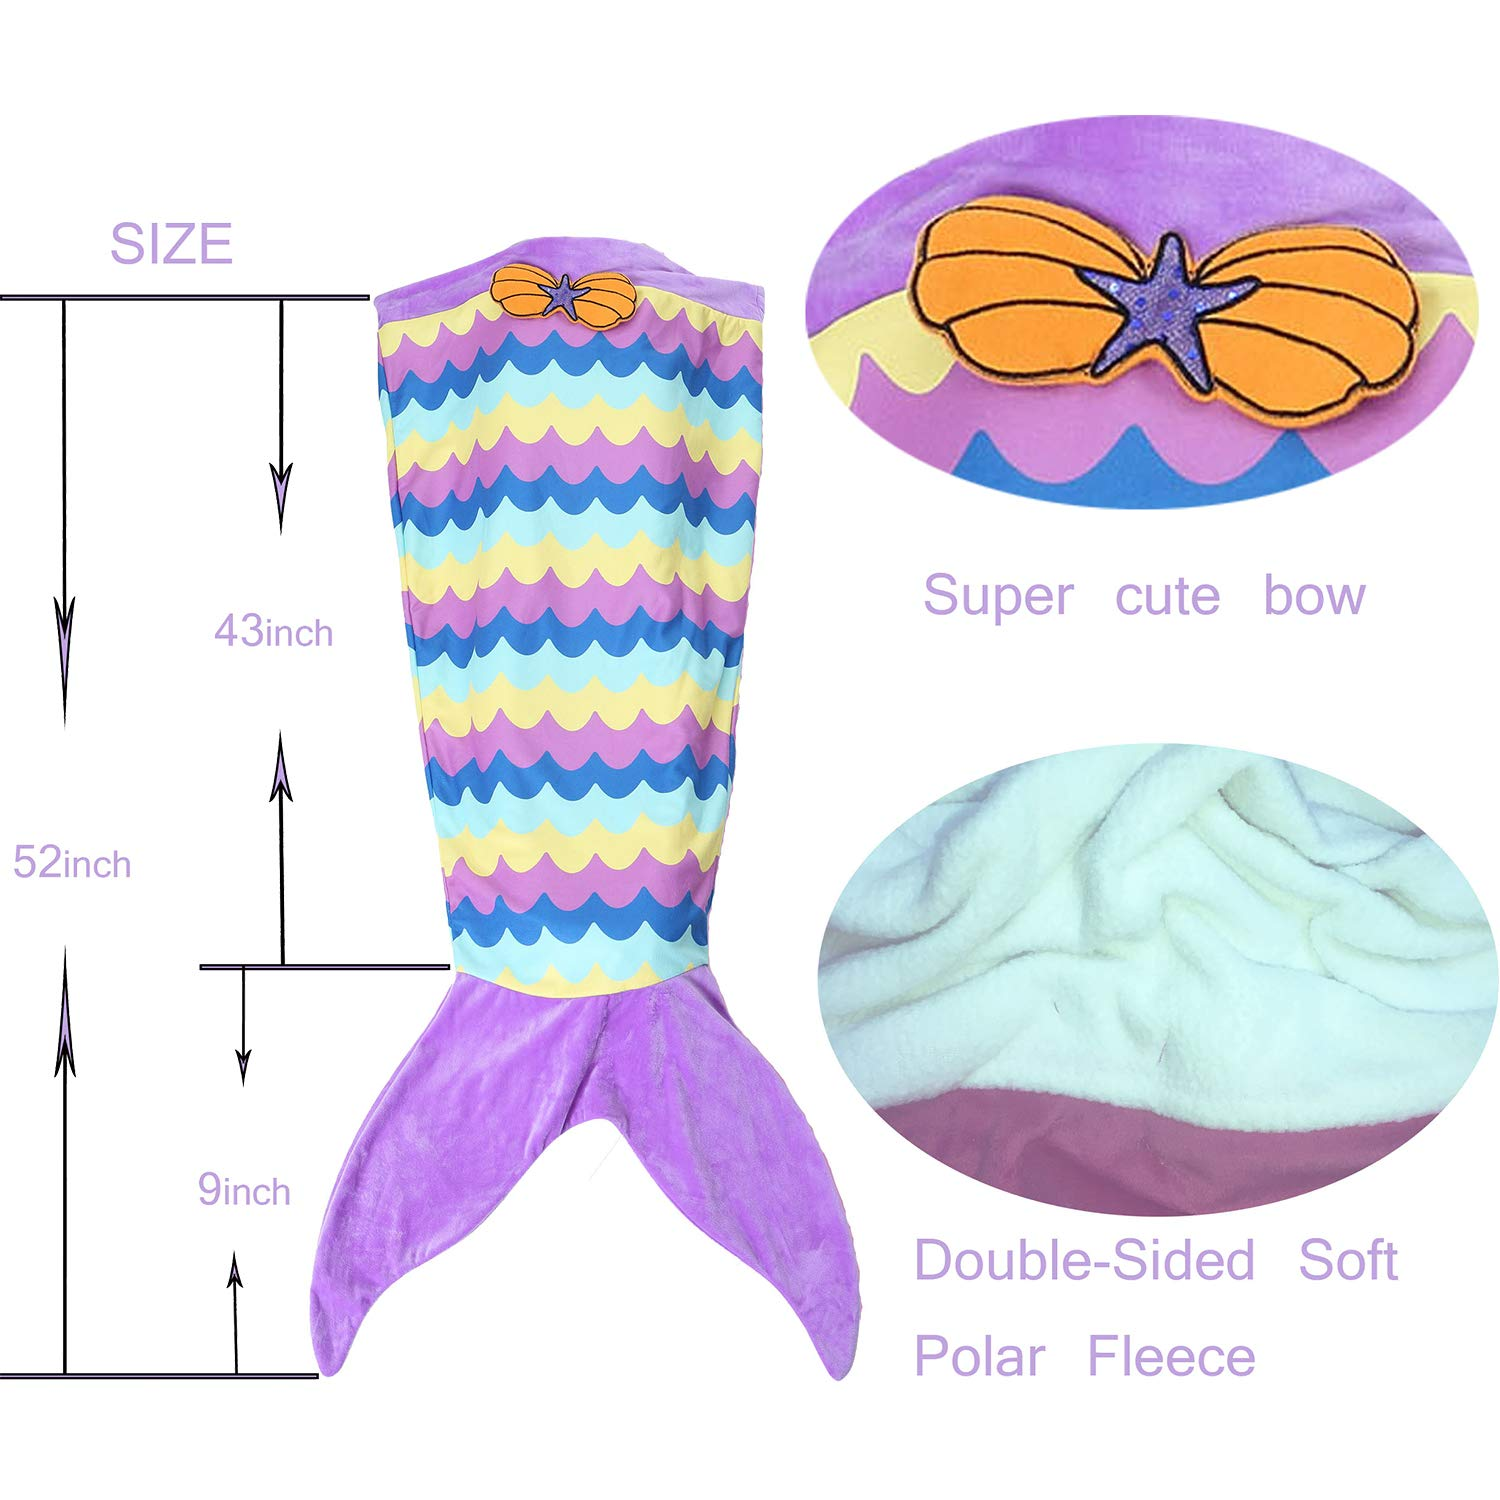 Ereon Mermaid Tail Blanket for Girls Kids Soft Plush Flannel Sleeping Bag to Keep Warm All Seasons Blanket for Girl Christmas Birthday Gift Apply to Bedroom Sofa Beach Outdoor(Purple) by Ereon (Image #8)